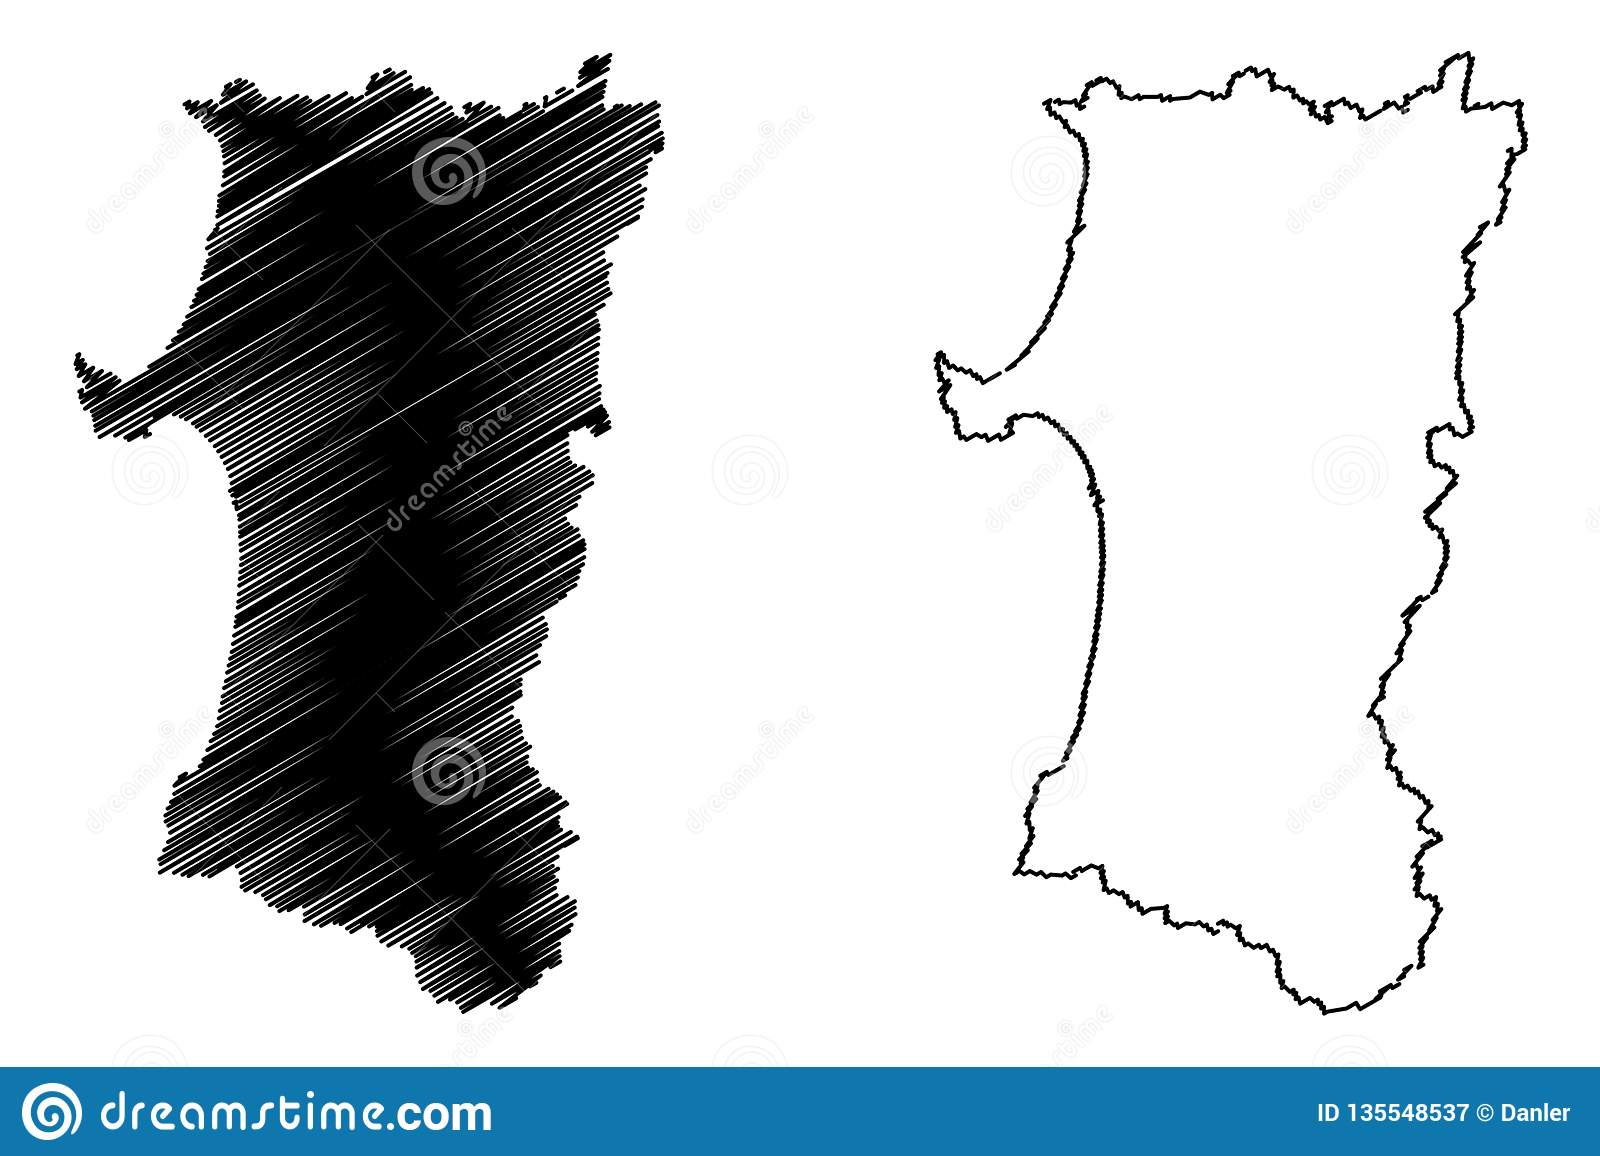 Picture of: Akita Prefecture Map Vector Stock Vector Illustration Of Monarchy Outline 135548537